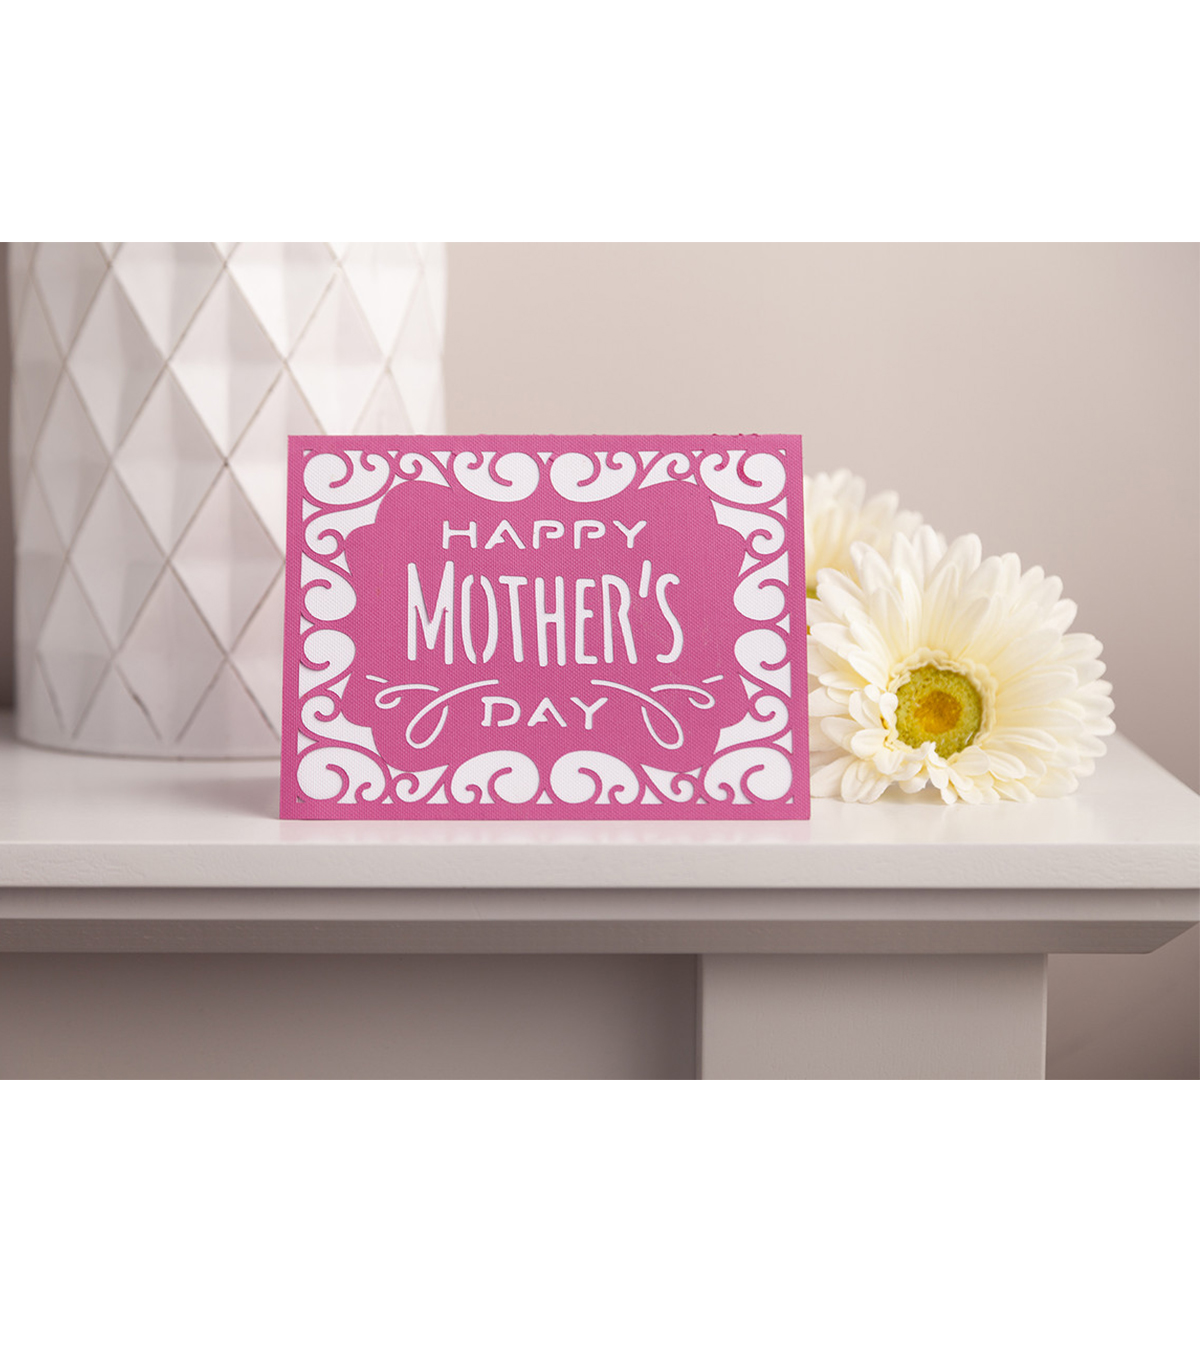 How To Make Happy Mother S Day Cricut Card Joann